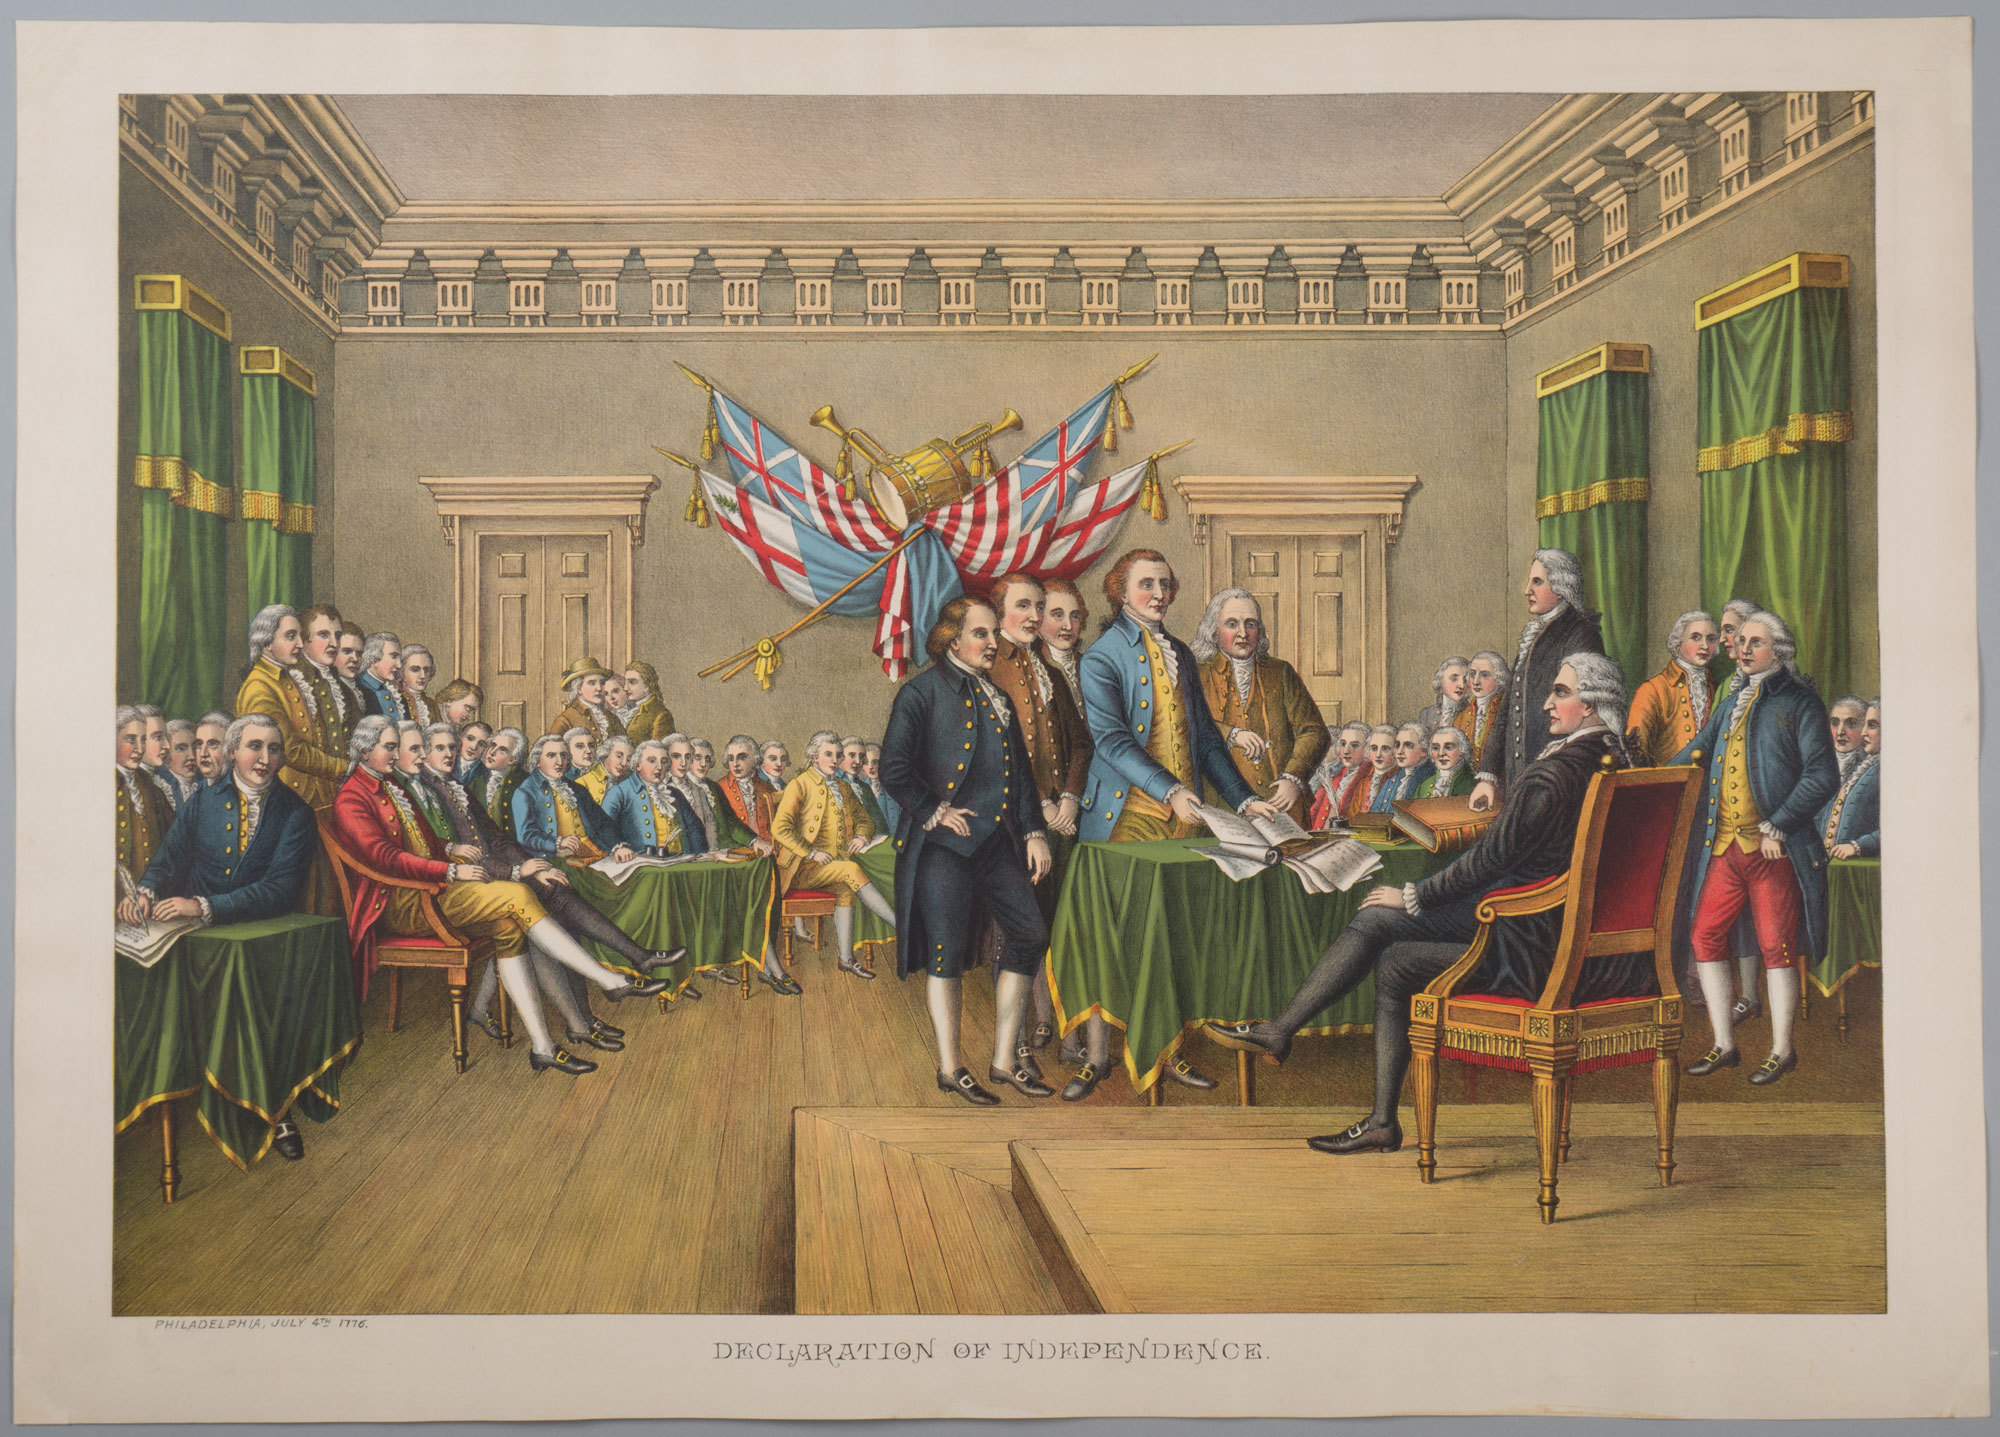 Declaration Of Independence July 4 George